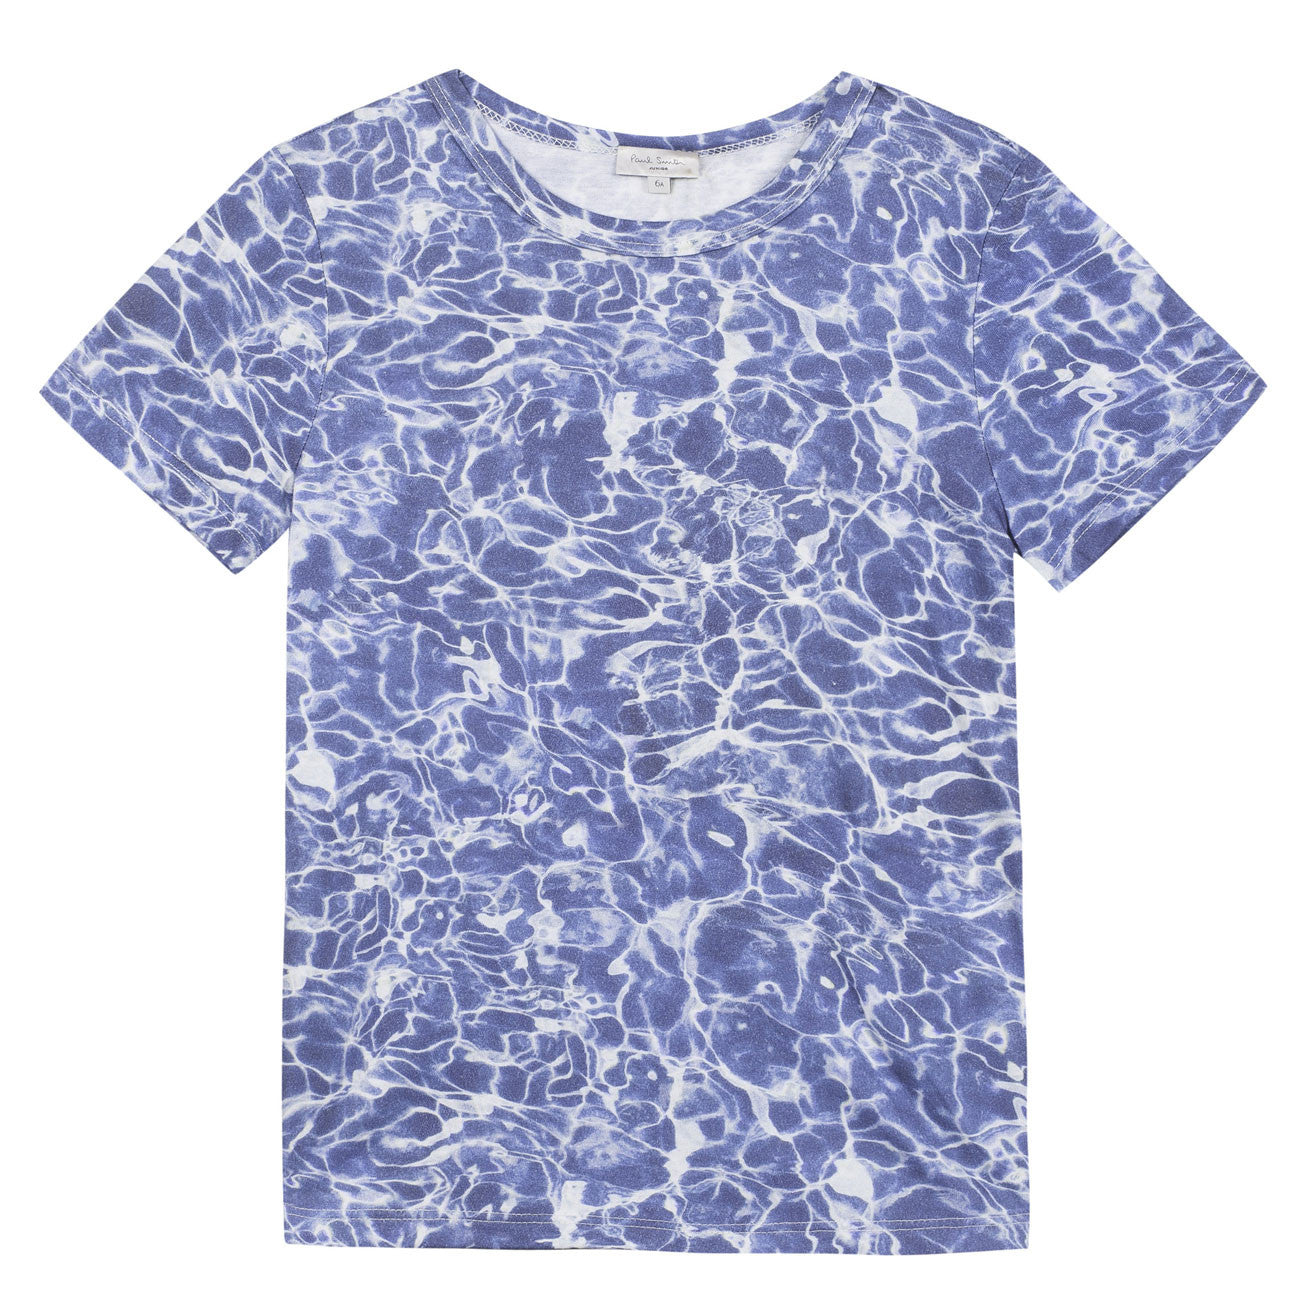 Paul Smith Pool Print Tee